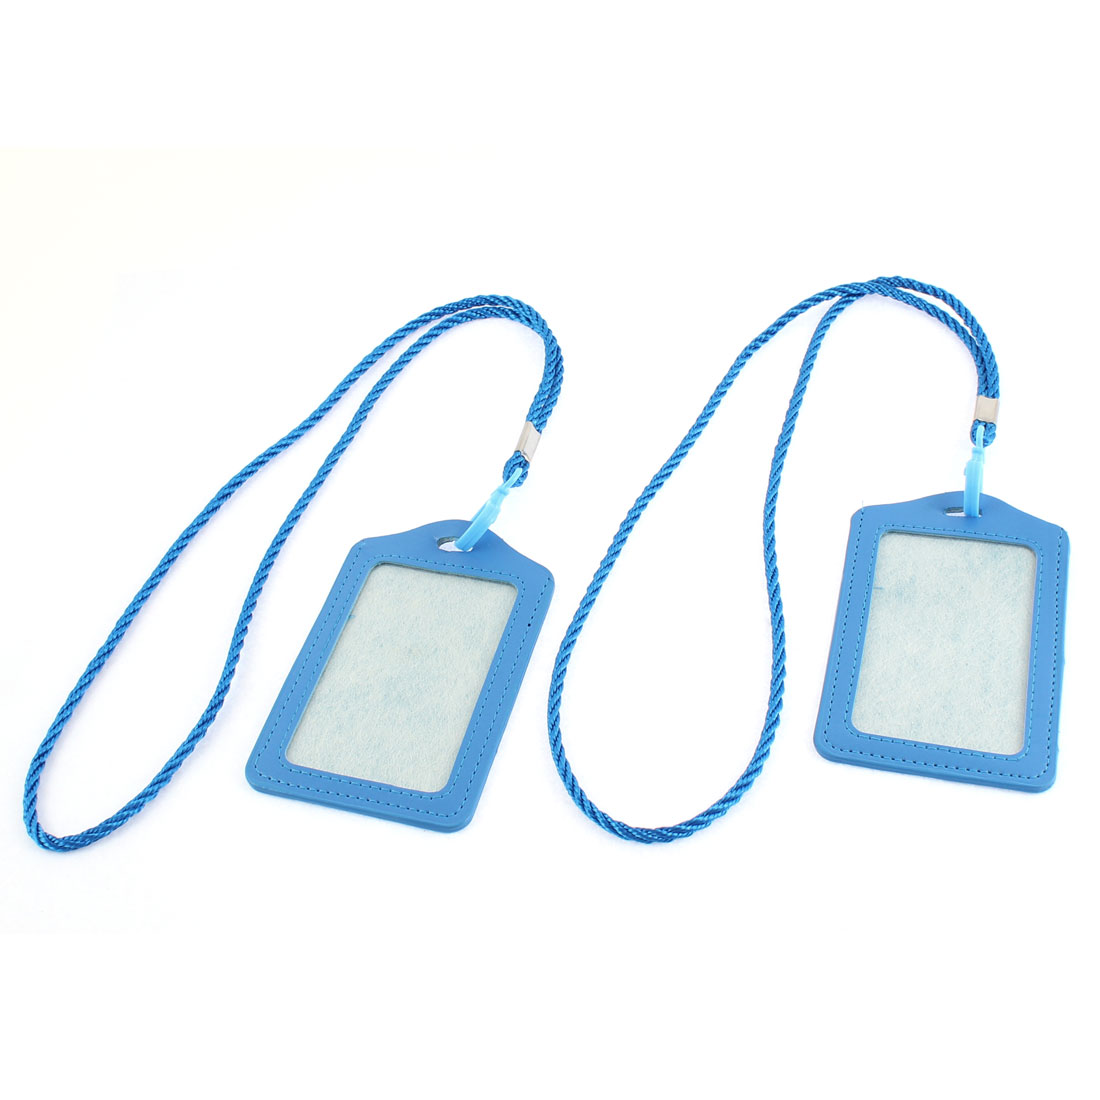 Faux Leather Vertical Design Office Business Badge Credit Card Holder Blue 2pcs